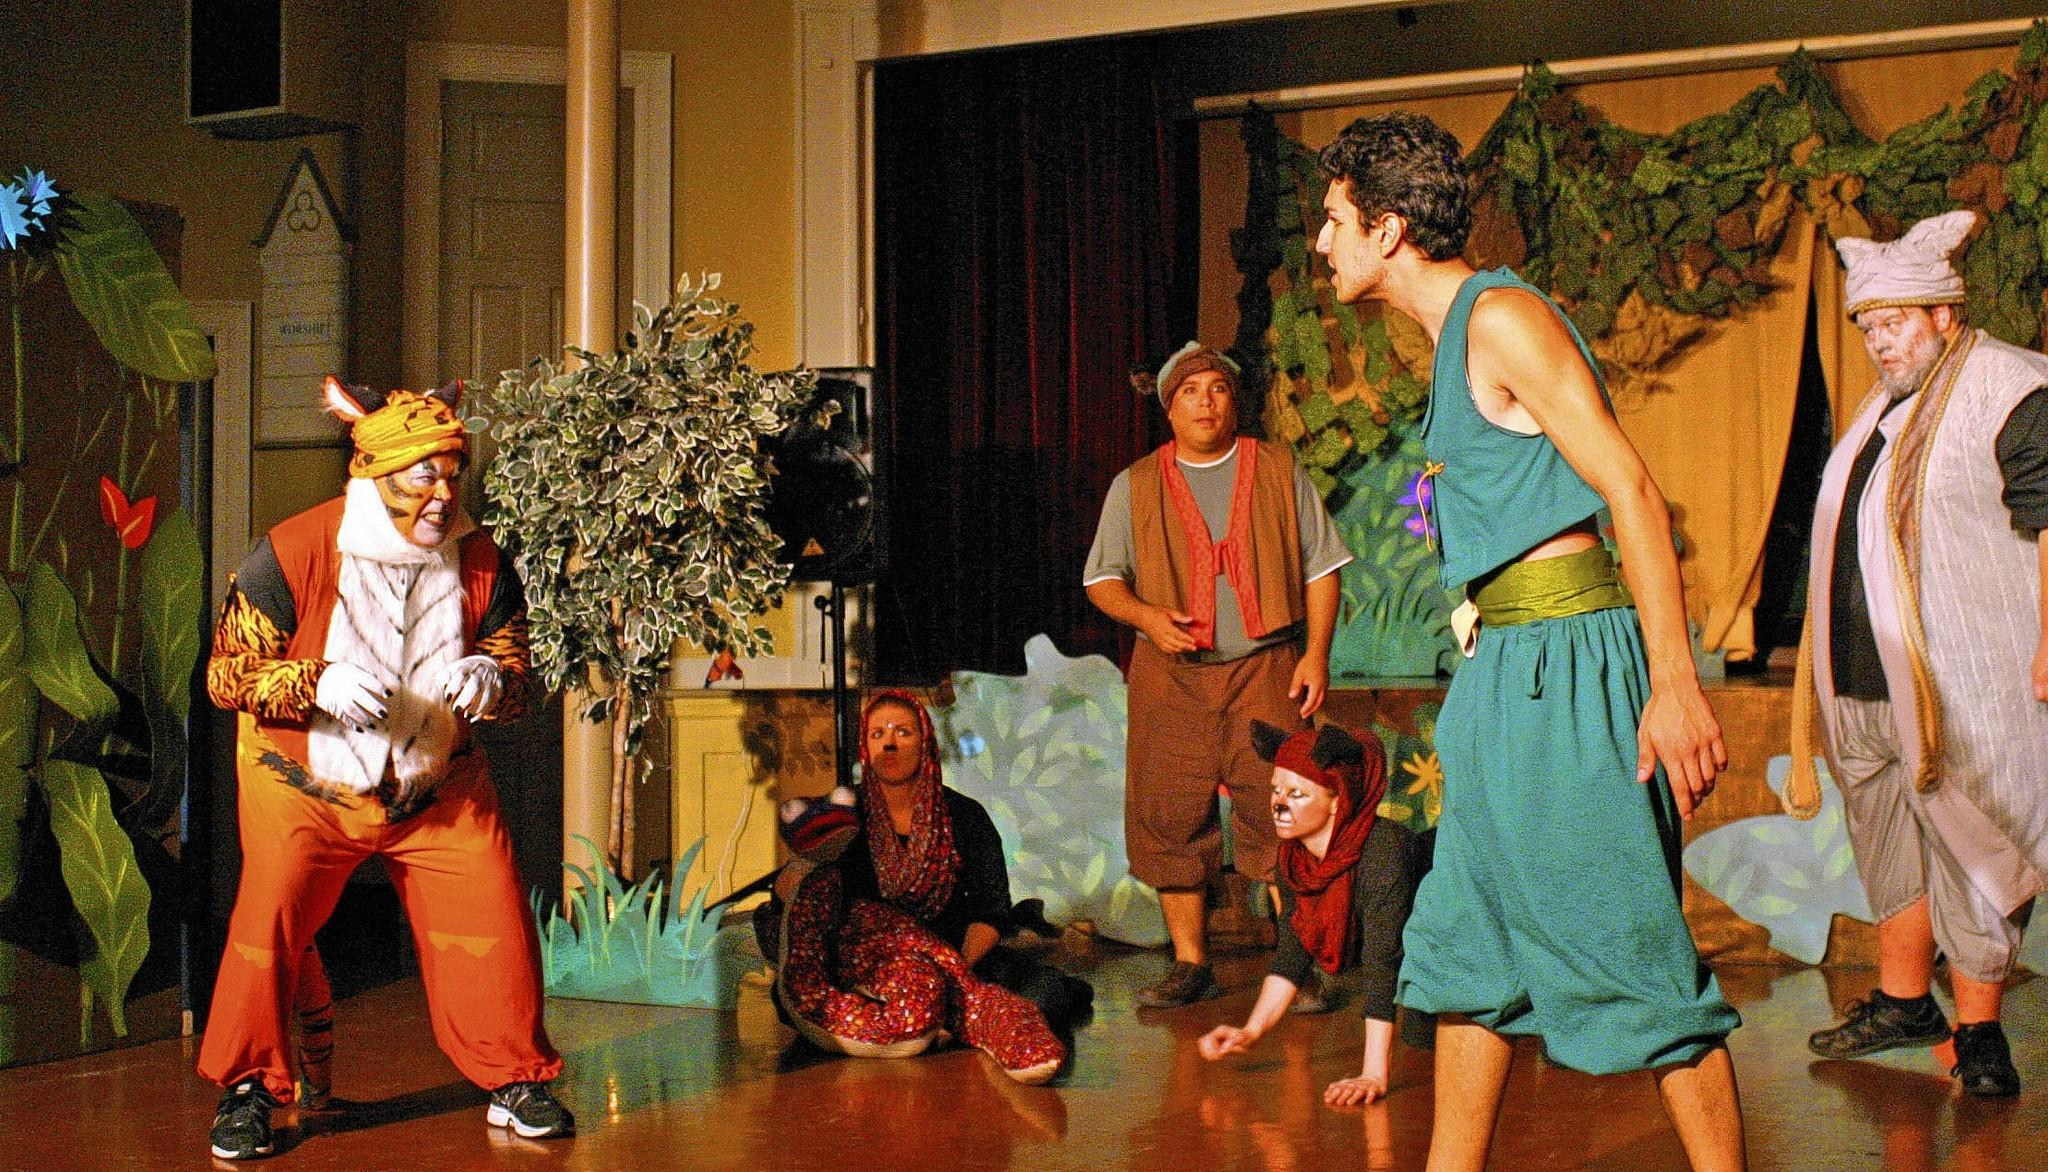 Mowgli the Man-Cub (Teague Fernandez, second from right) confronts Shere Khan the Tiger (Bill Gibson) in front of Mowgli's friends -- (from left), Kaa the Python (Beth Kressin), Bagheera the Panther (Kate Hughes), Baloo the Bear (Justin Ariola) and Great Wolf (Richard Warmkessel).